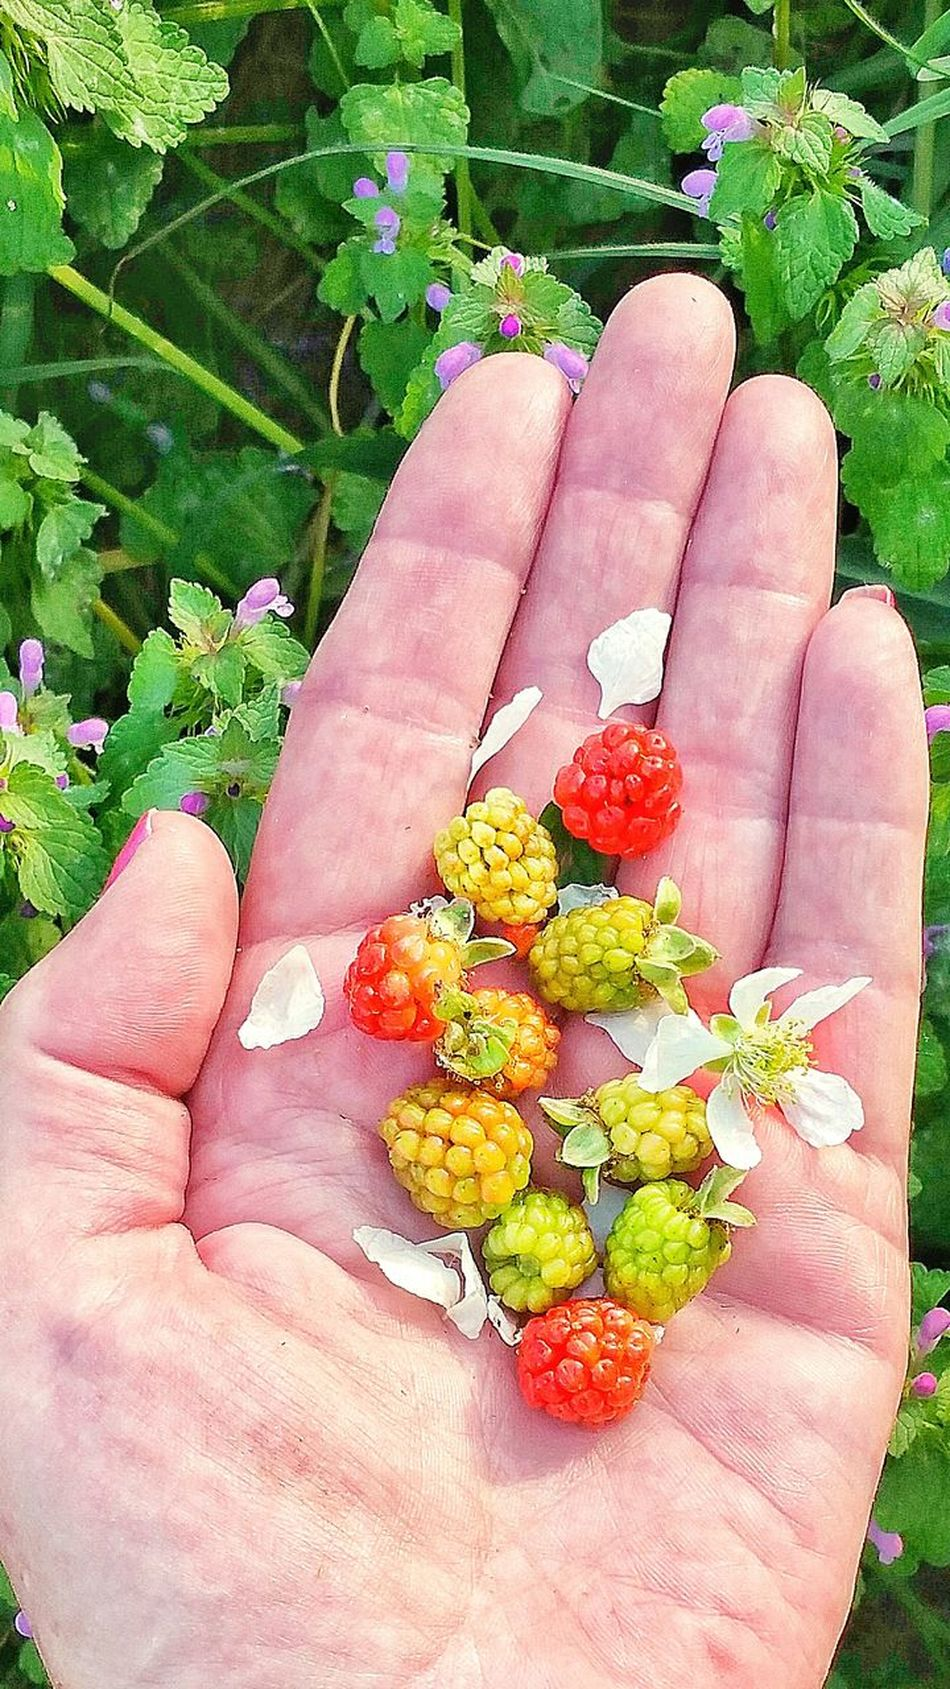 Human Hand Close-up Freshness Flower Head Growth Holding Outdoors Human Finger Flower Plant Leaf Personal Perspective Lifestyles Wild Blackberries Unripe Dew Berries Variation Palm Berry Fruit Multi Colored Healthy Eating Fruit Bunch Ready-to-eat Wild